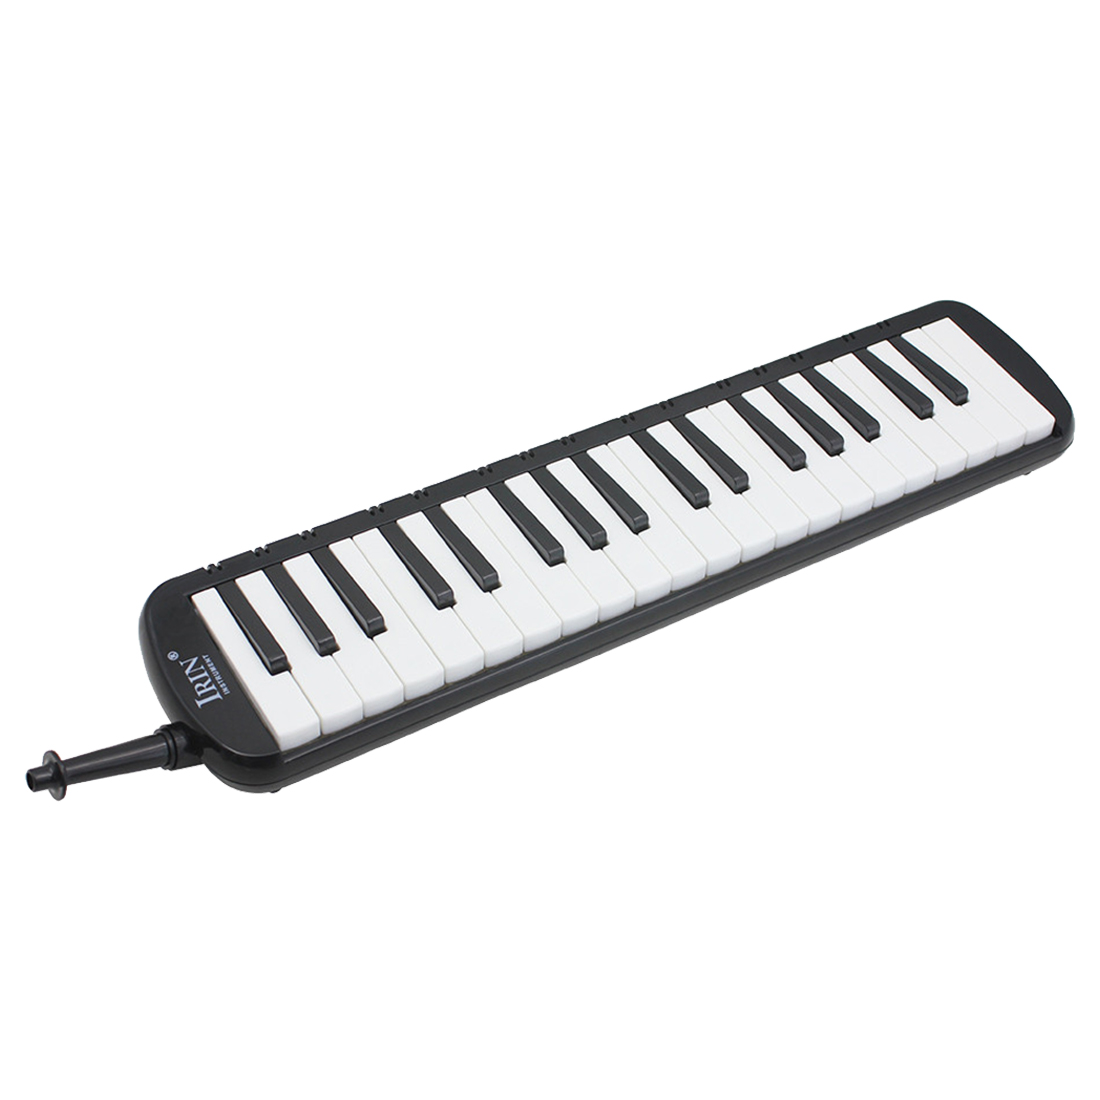 SYDS IRIN Black 37 Piano Keys Melodica Pianica w/Carrying Bag For Students NewSYDS IRIN Black 37 Piano Keys Melodica Pianica w/Carrying Bag For Students New